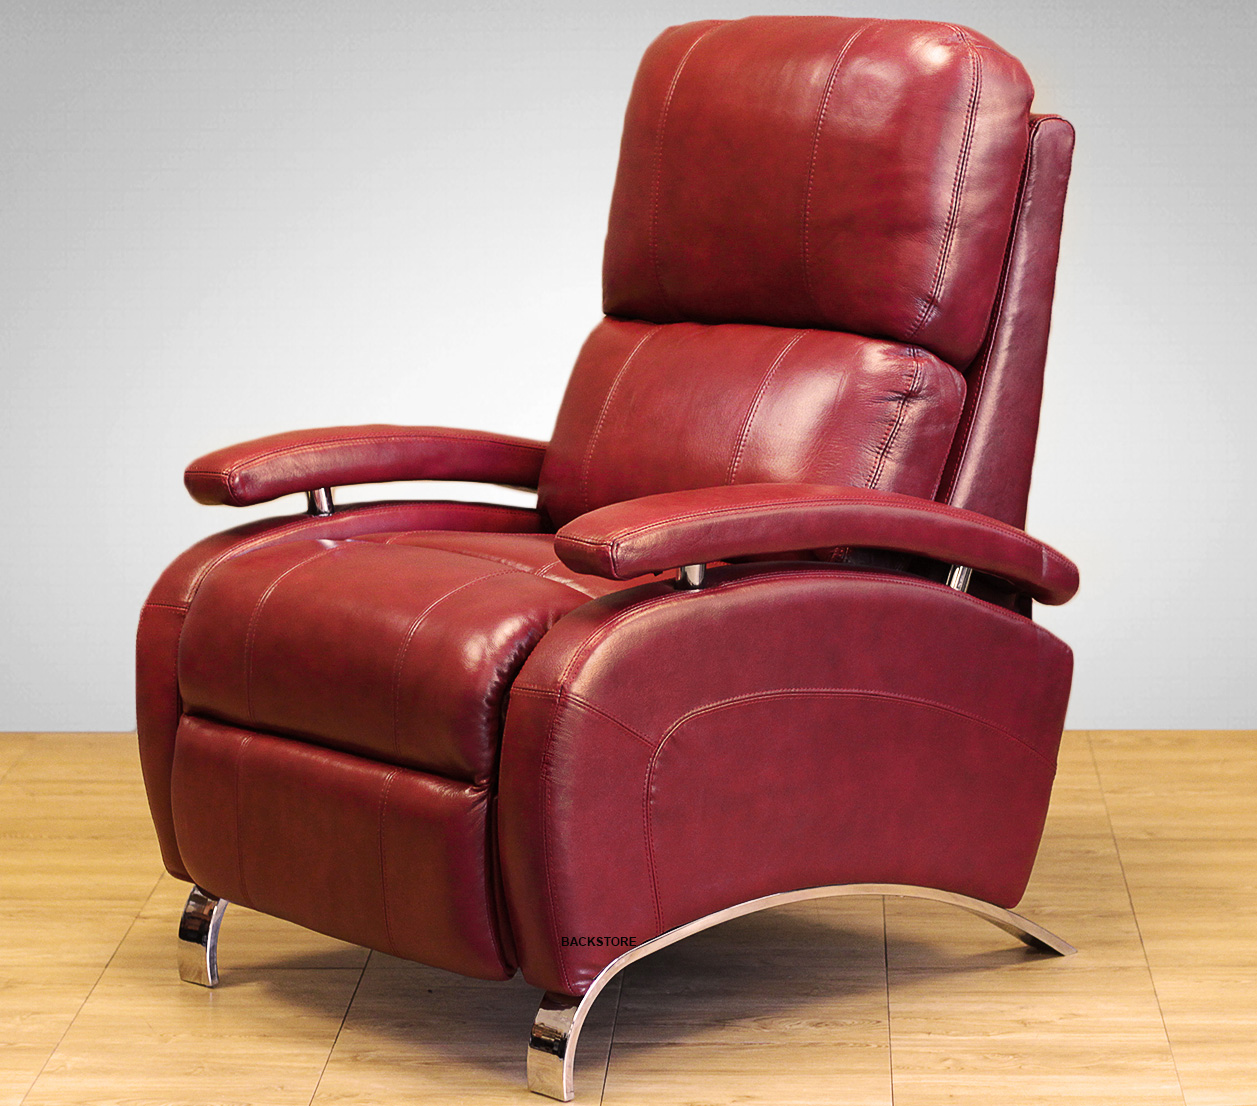 genuine leather chair ethan allen turner swivel barcalounger oracle ii recliner lounger